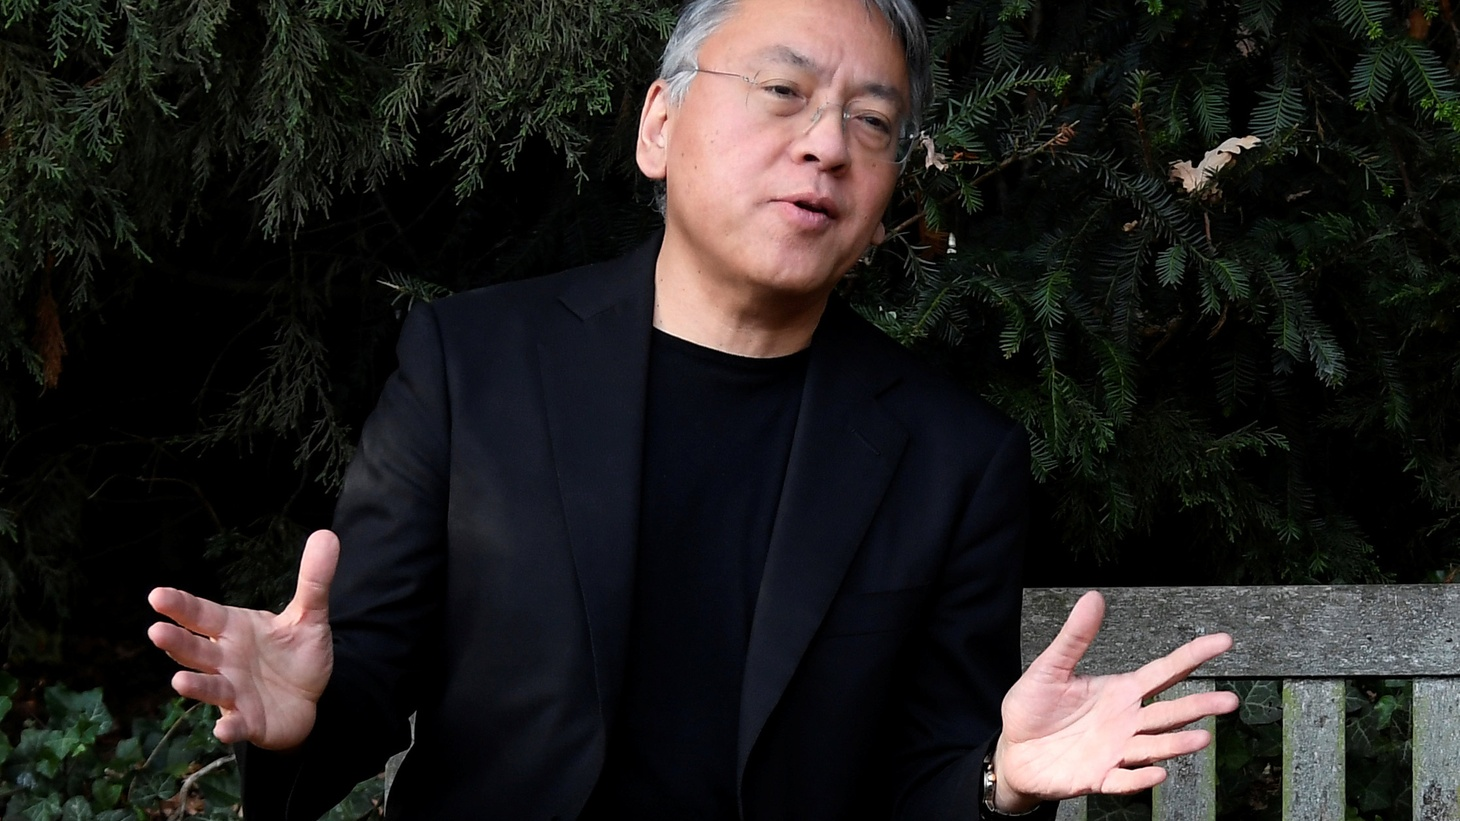 We sample 25 years of Bookworm conversations with Kazuo Ishiguro, the 2017 Nobel Prize Laureate for literature.